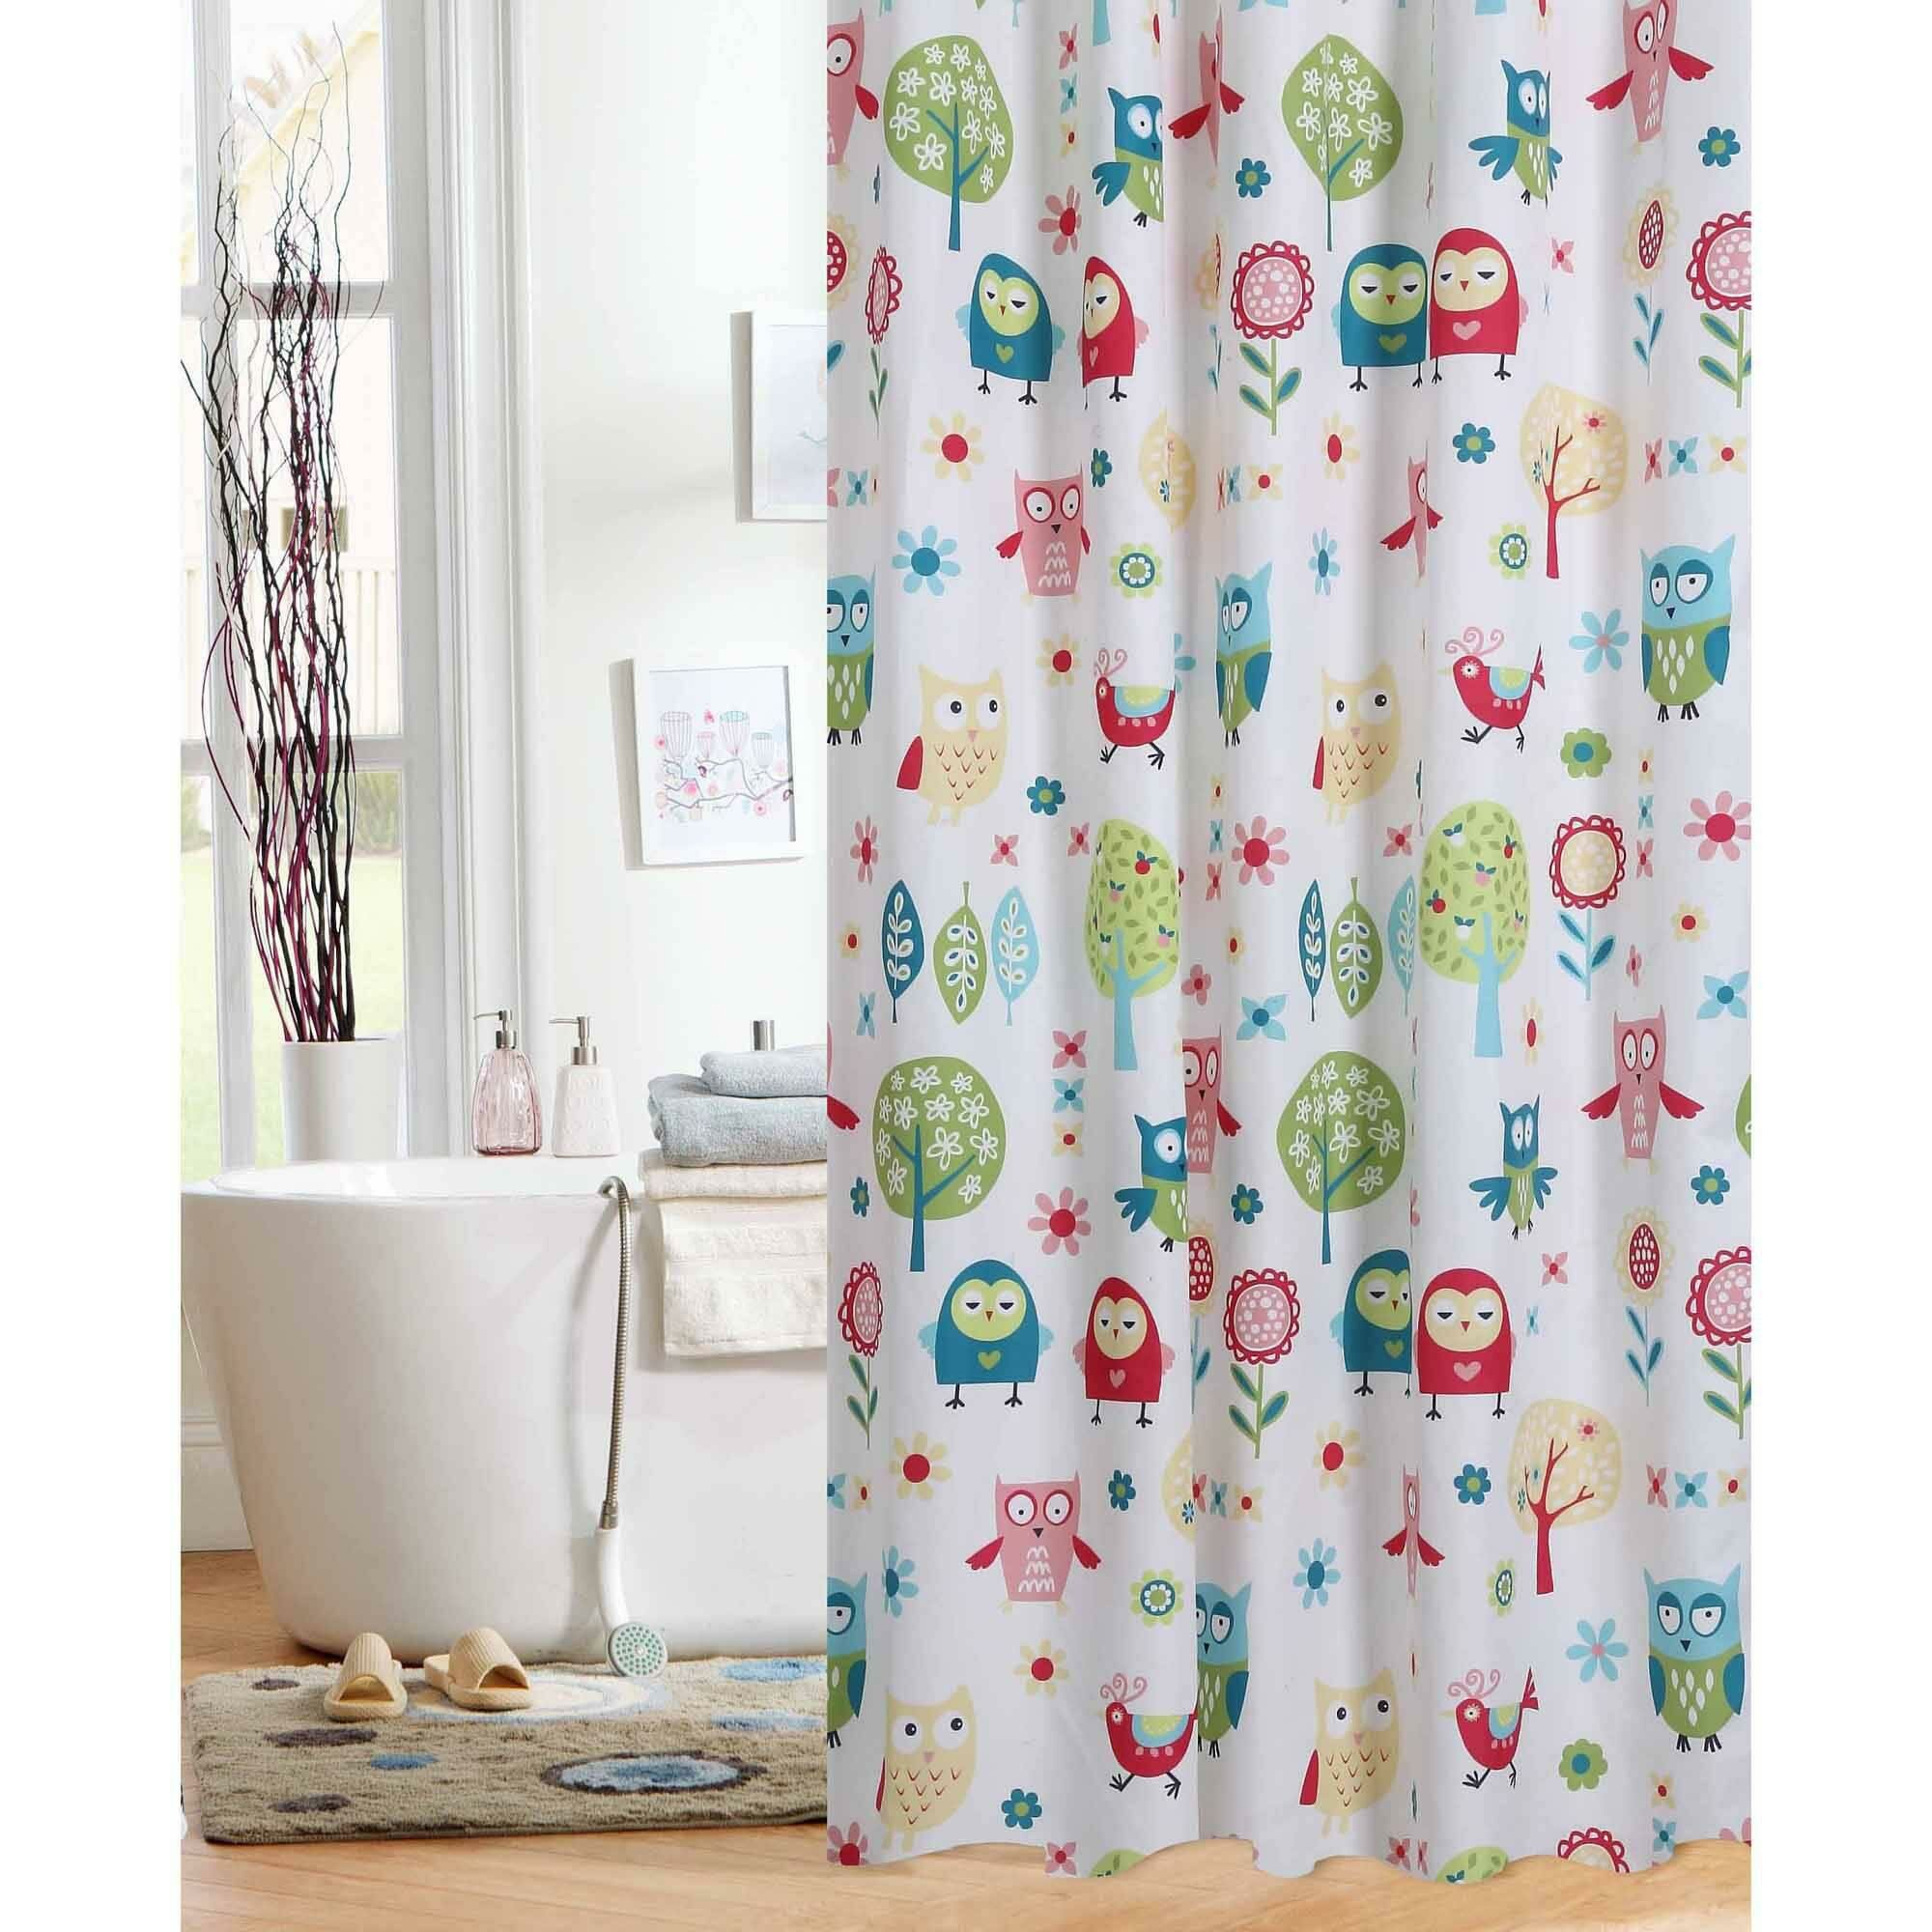 Target Shower Curtains | Cheap Fabric Shower Curtain | Walmart Shower Curtain